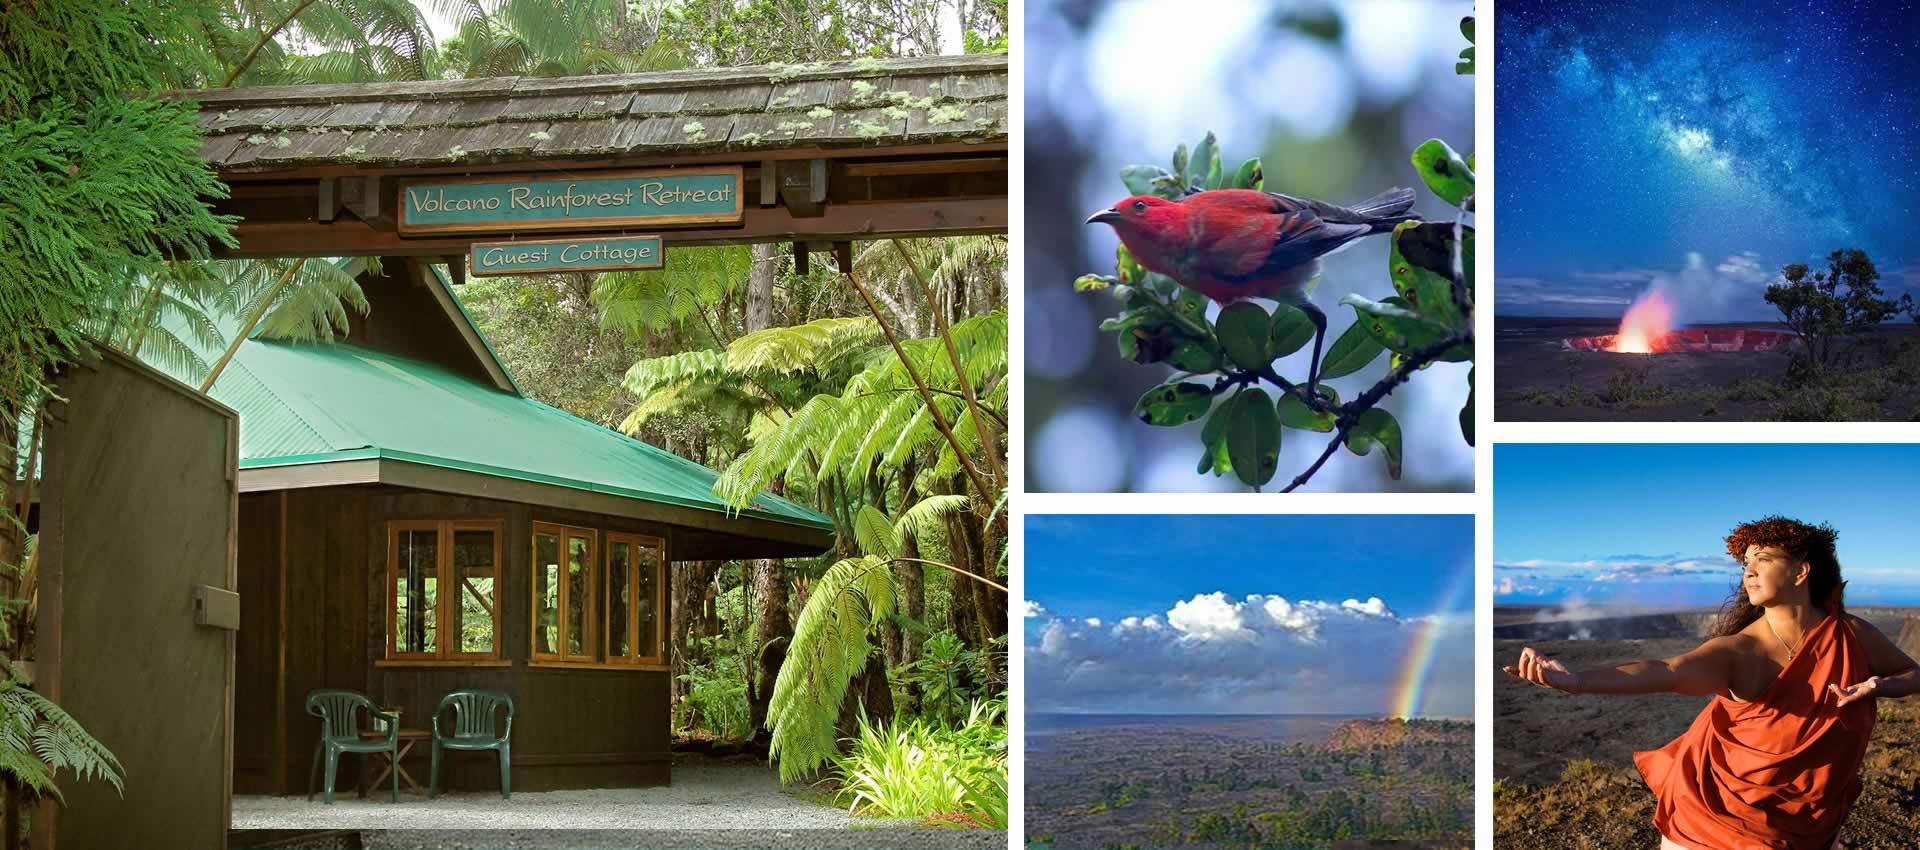 Volcano Rainforest Retreat Guest Cottage and Hawaii Photo Collage